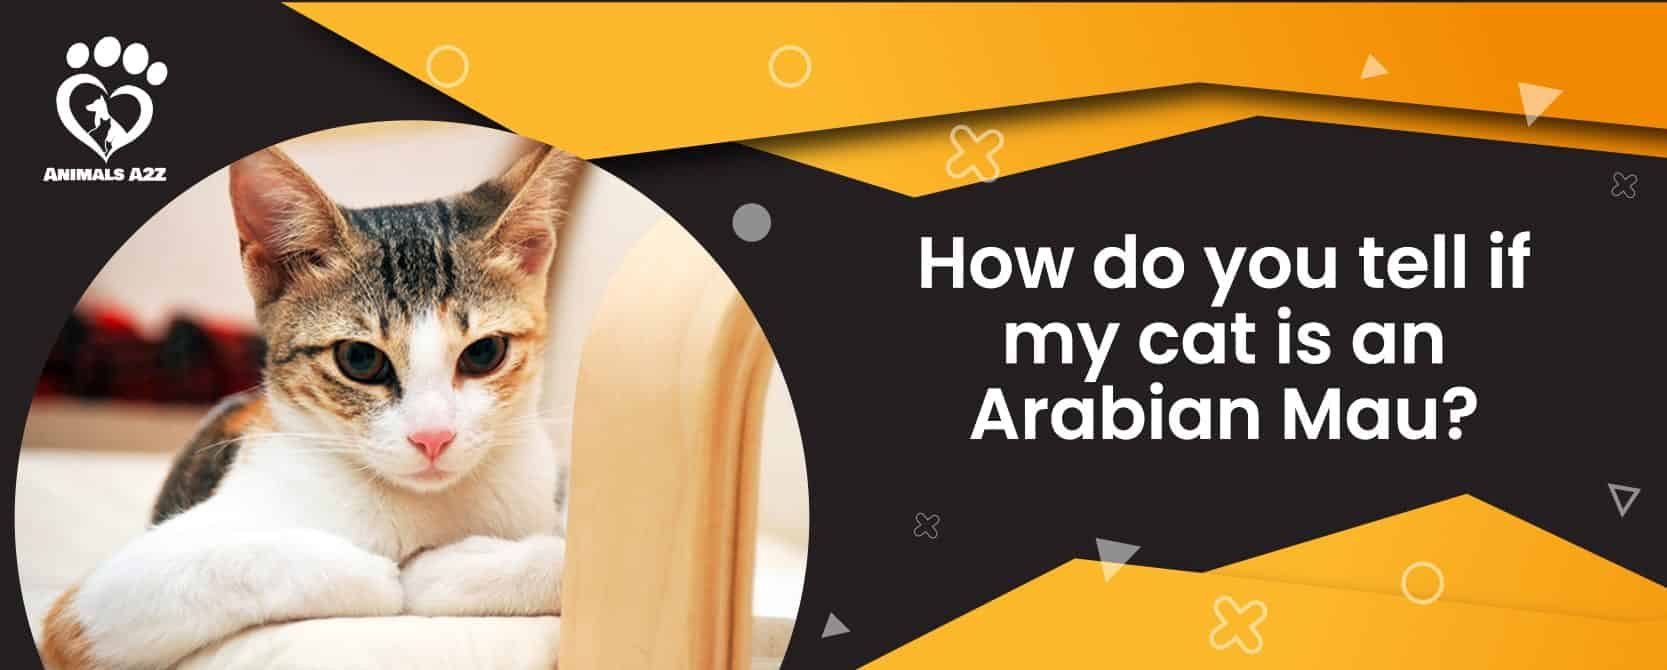 How do you tell if my cat is an Arabian Mau?